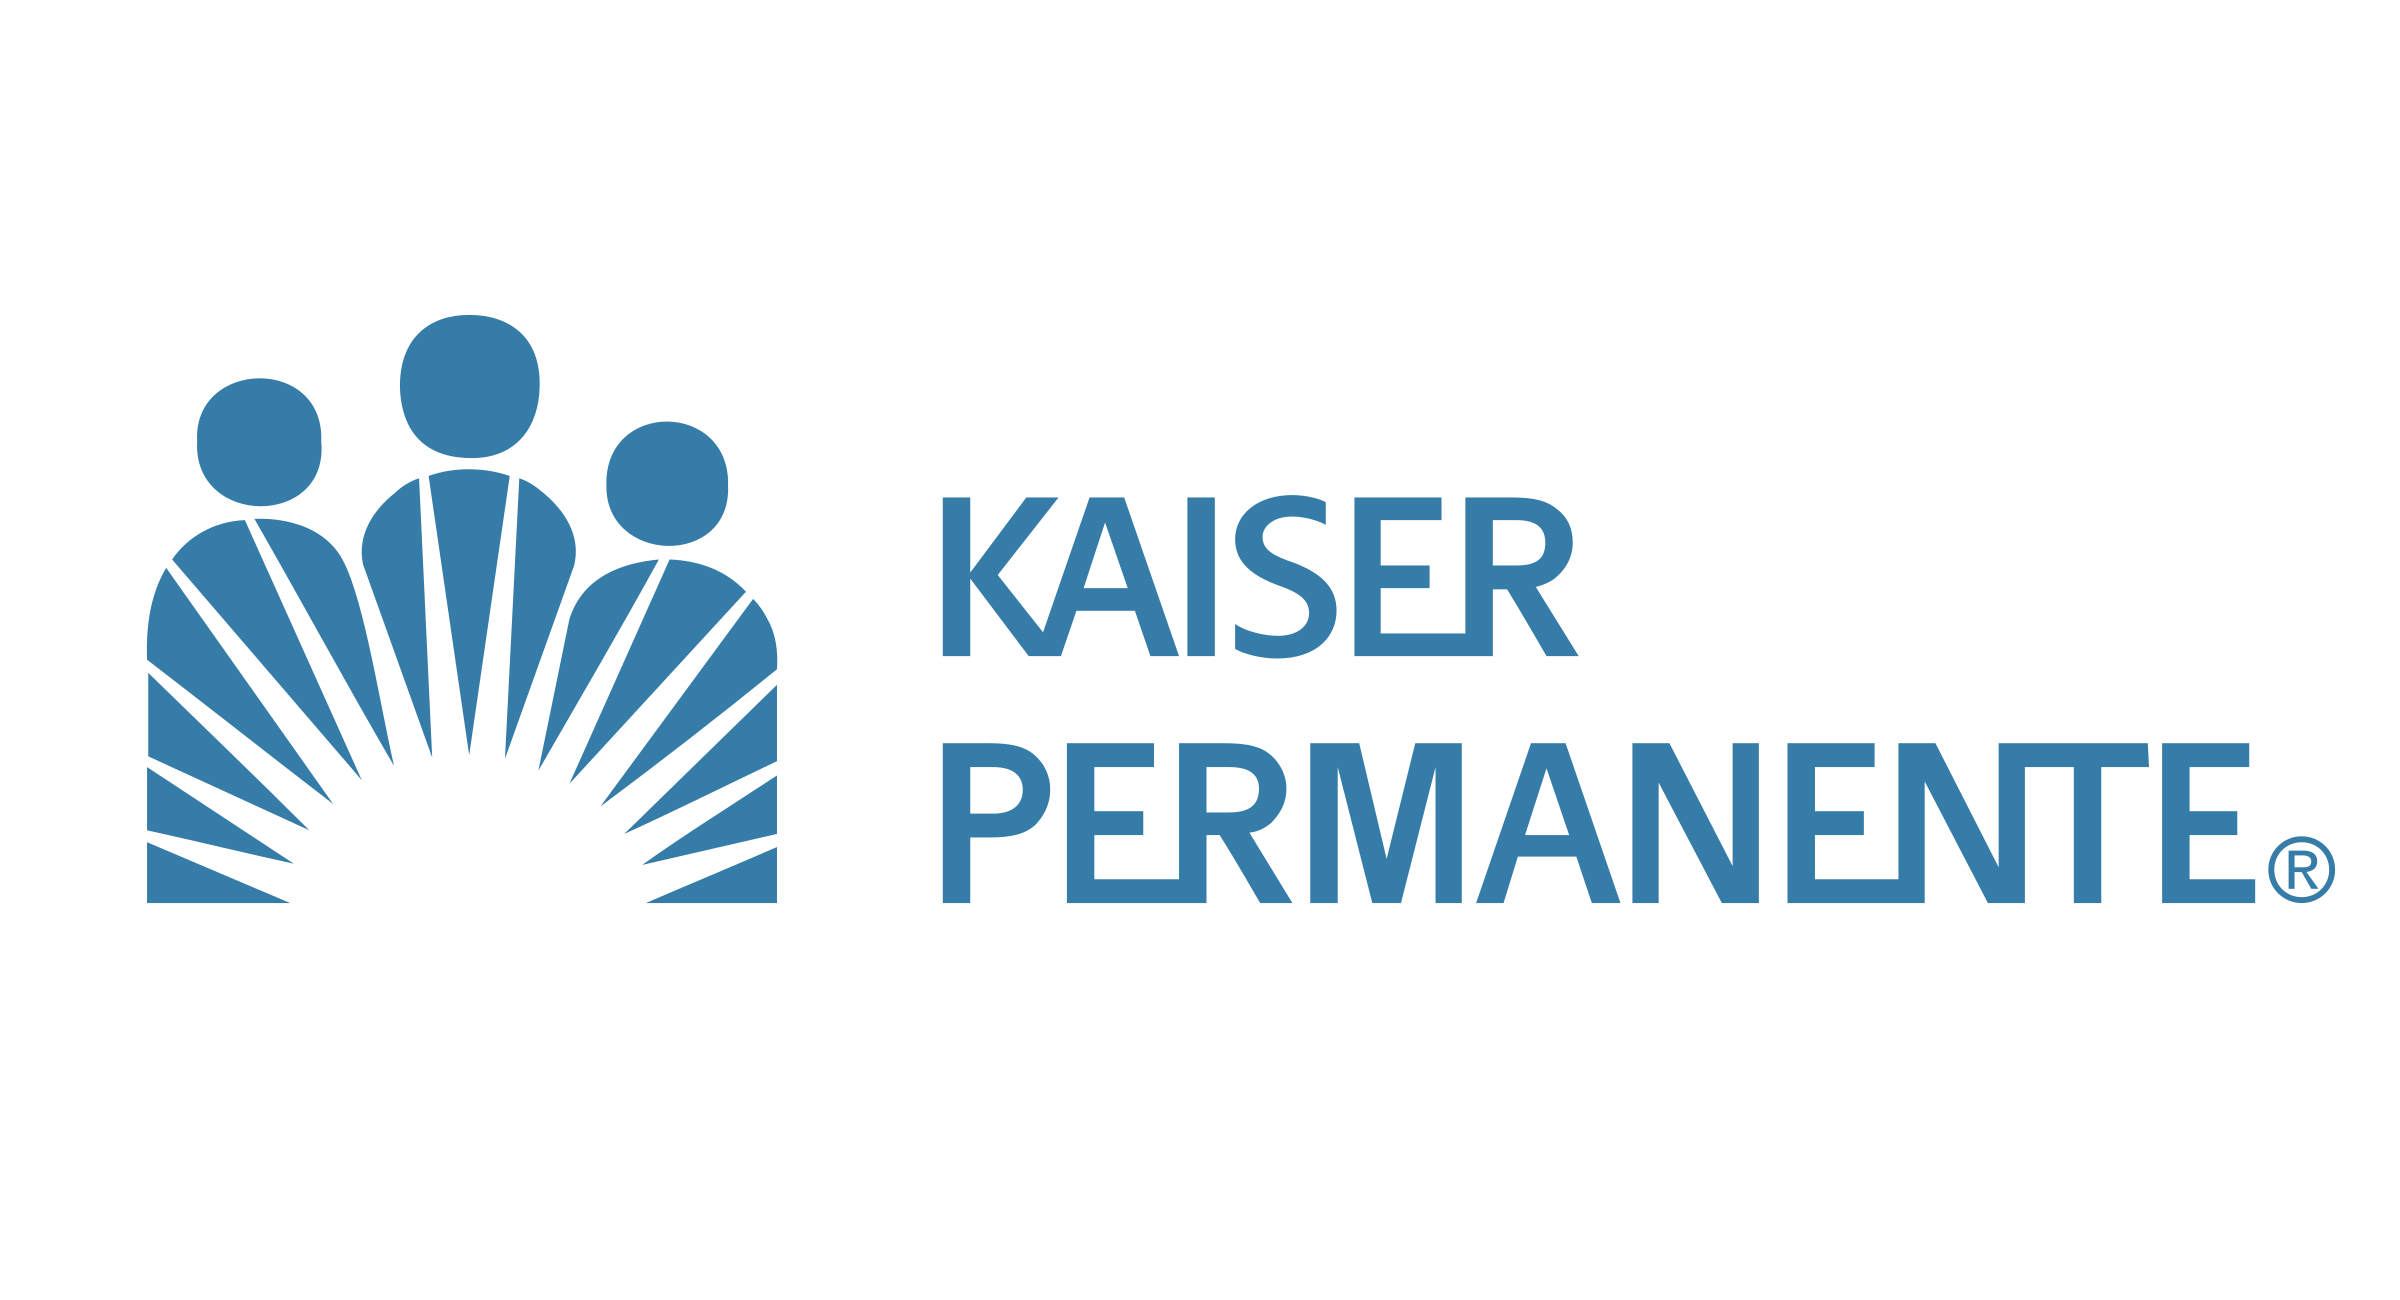 kaiser-permanente-logo-png-transparent